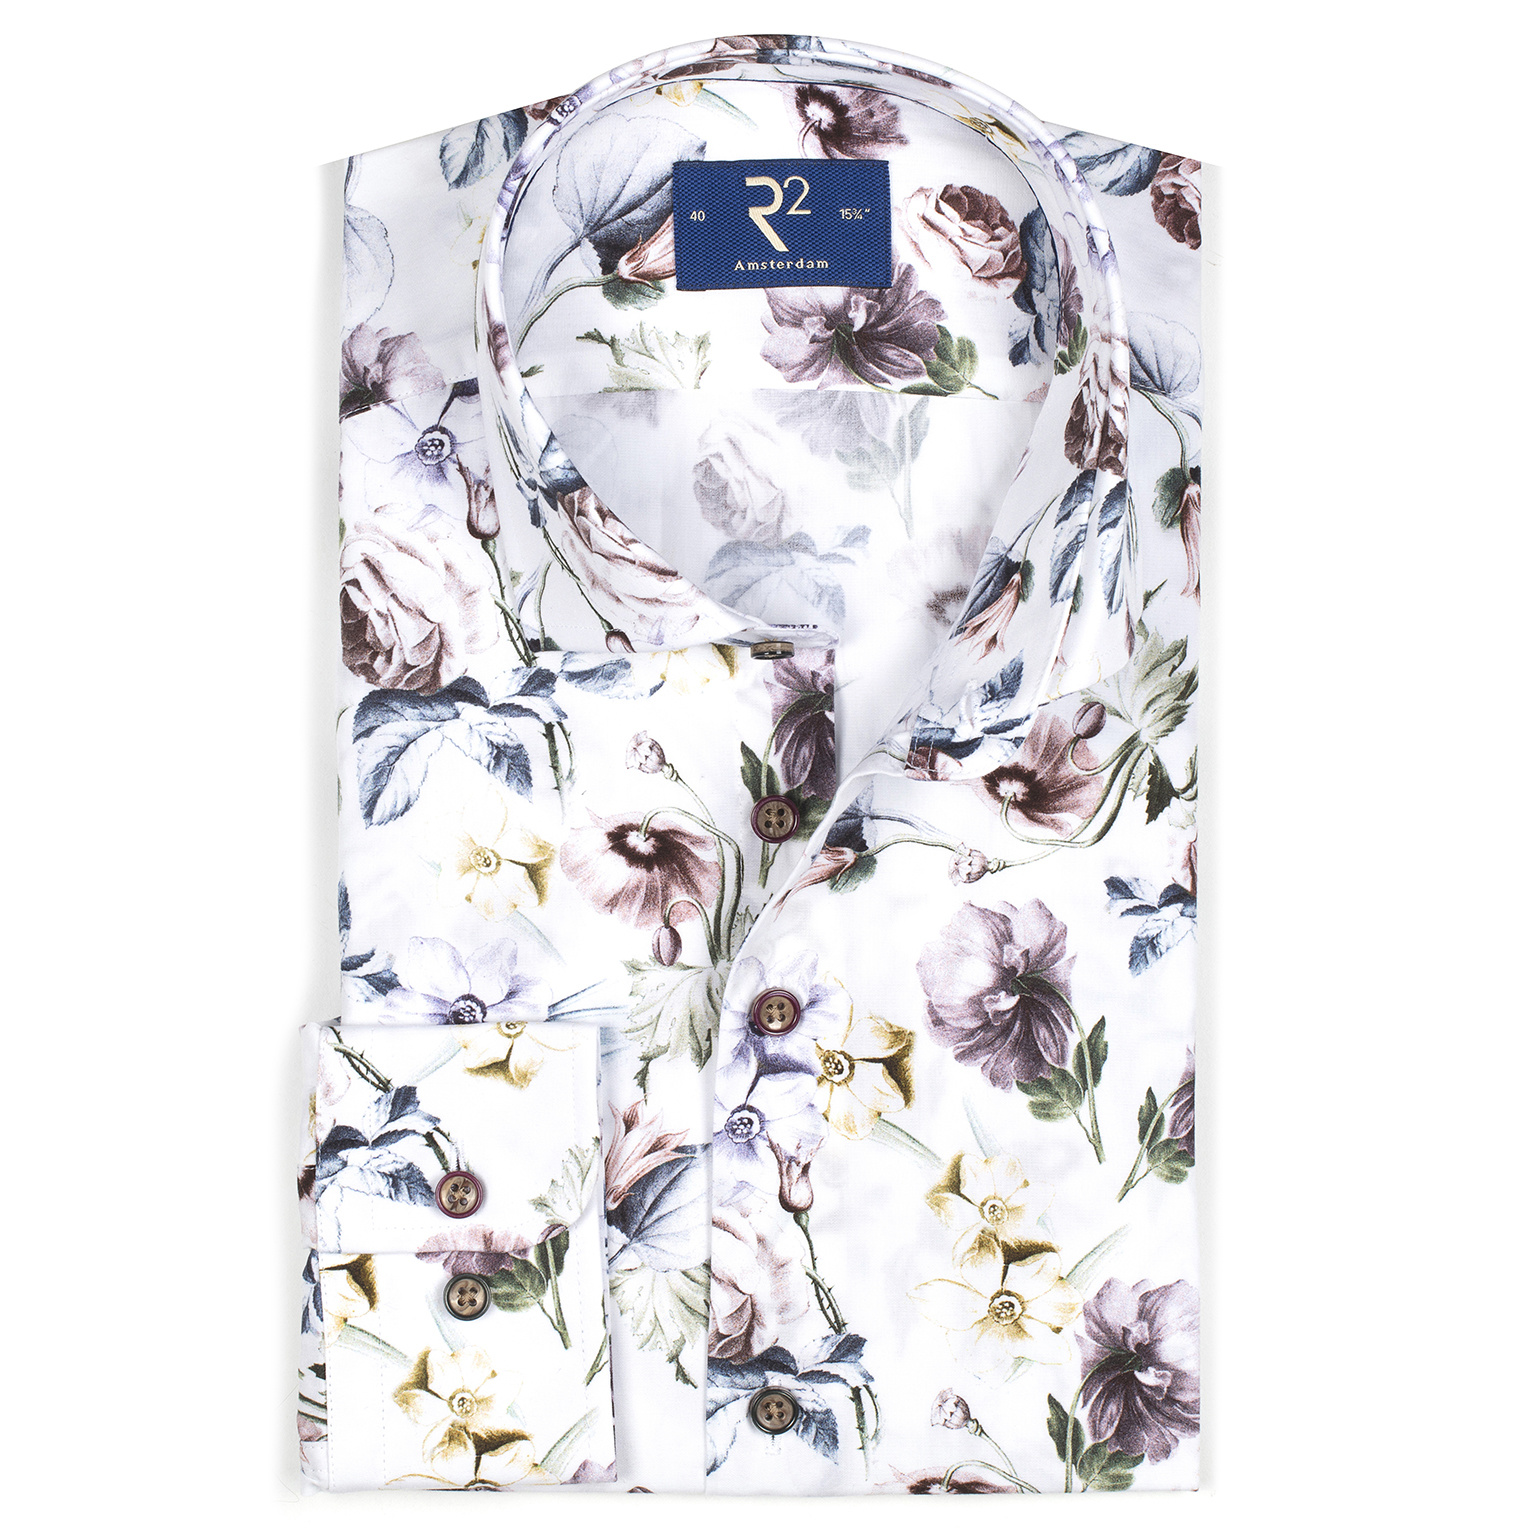 R2 White shirt with all over flowerprint.